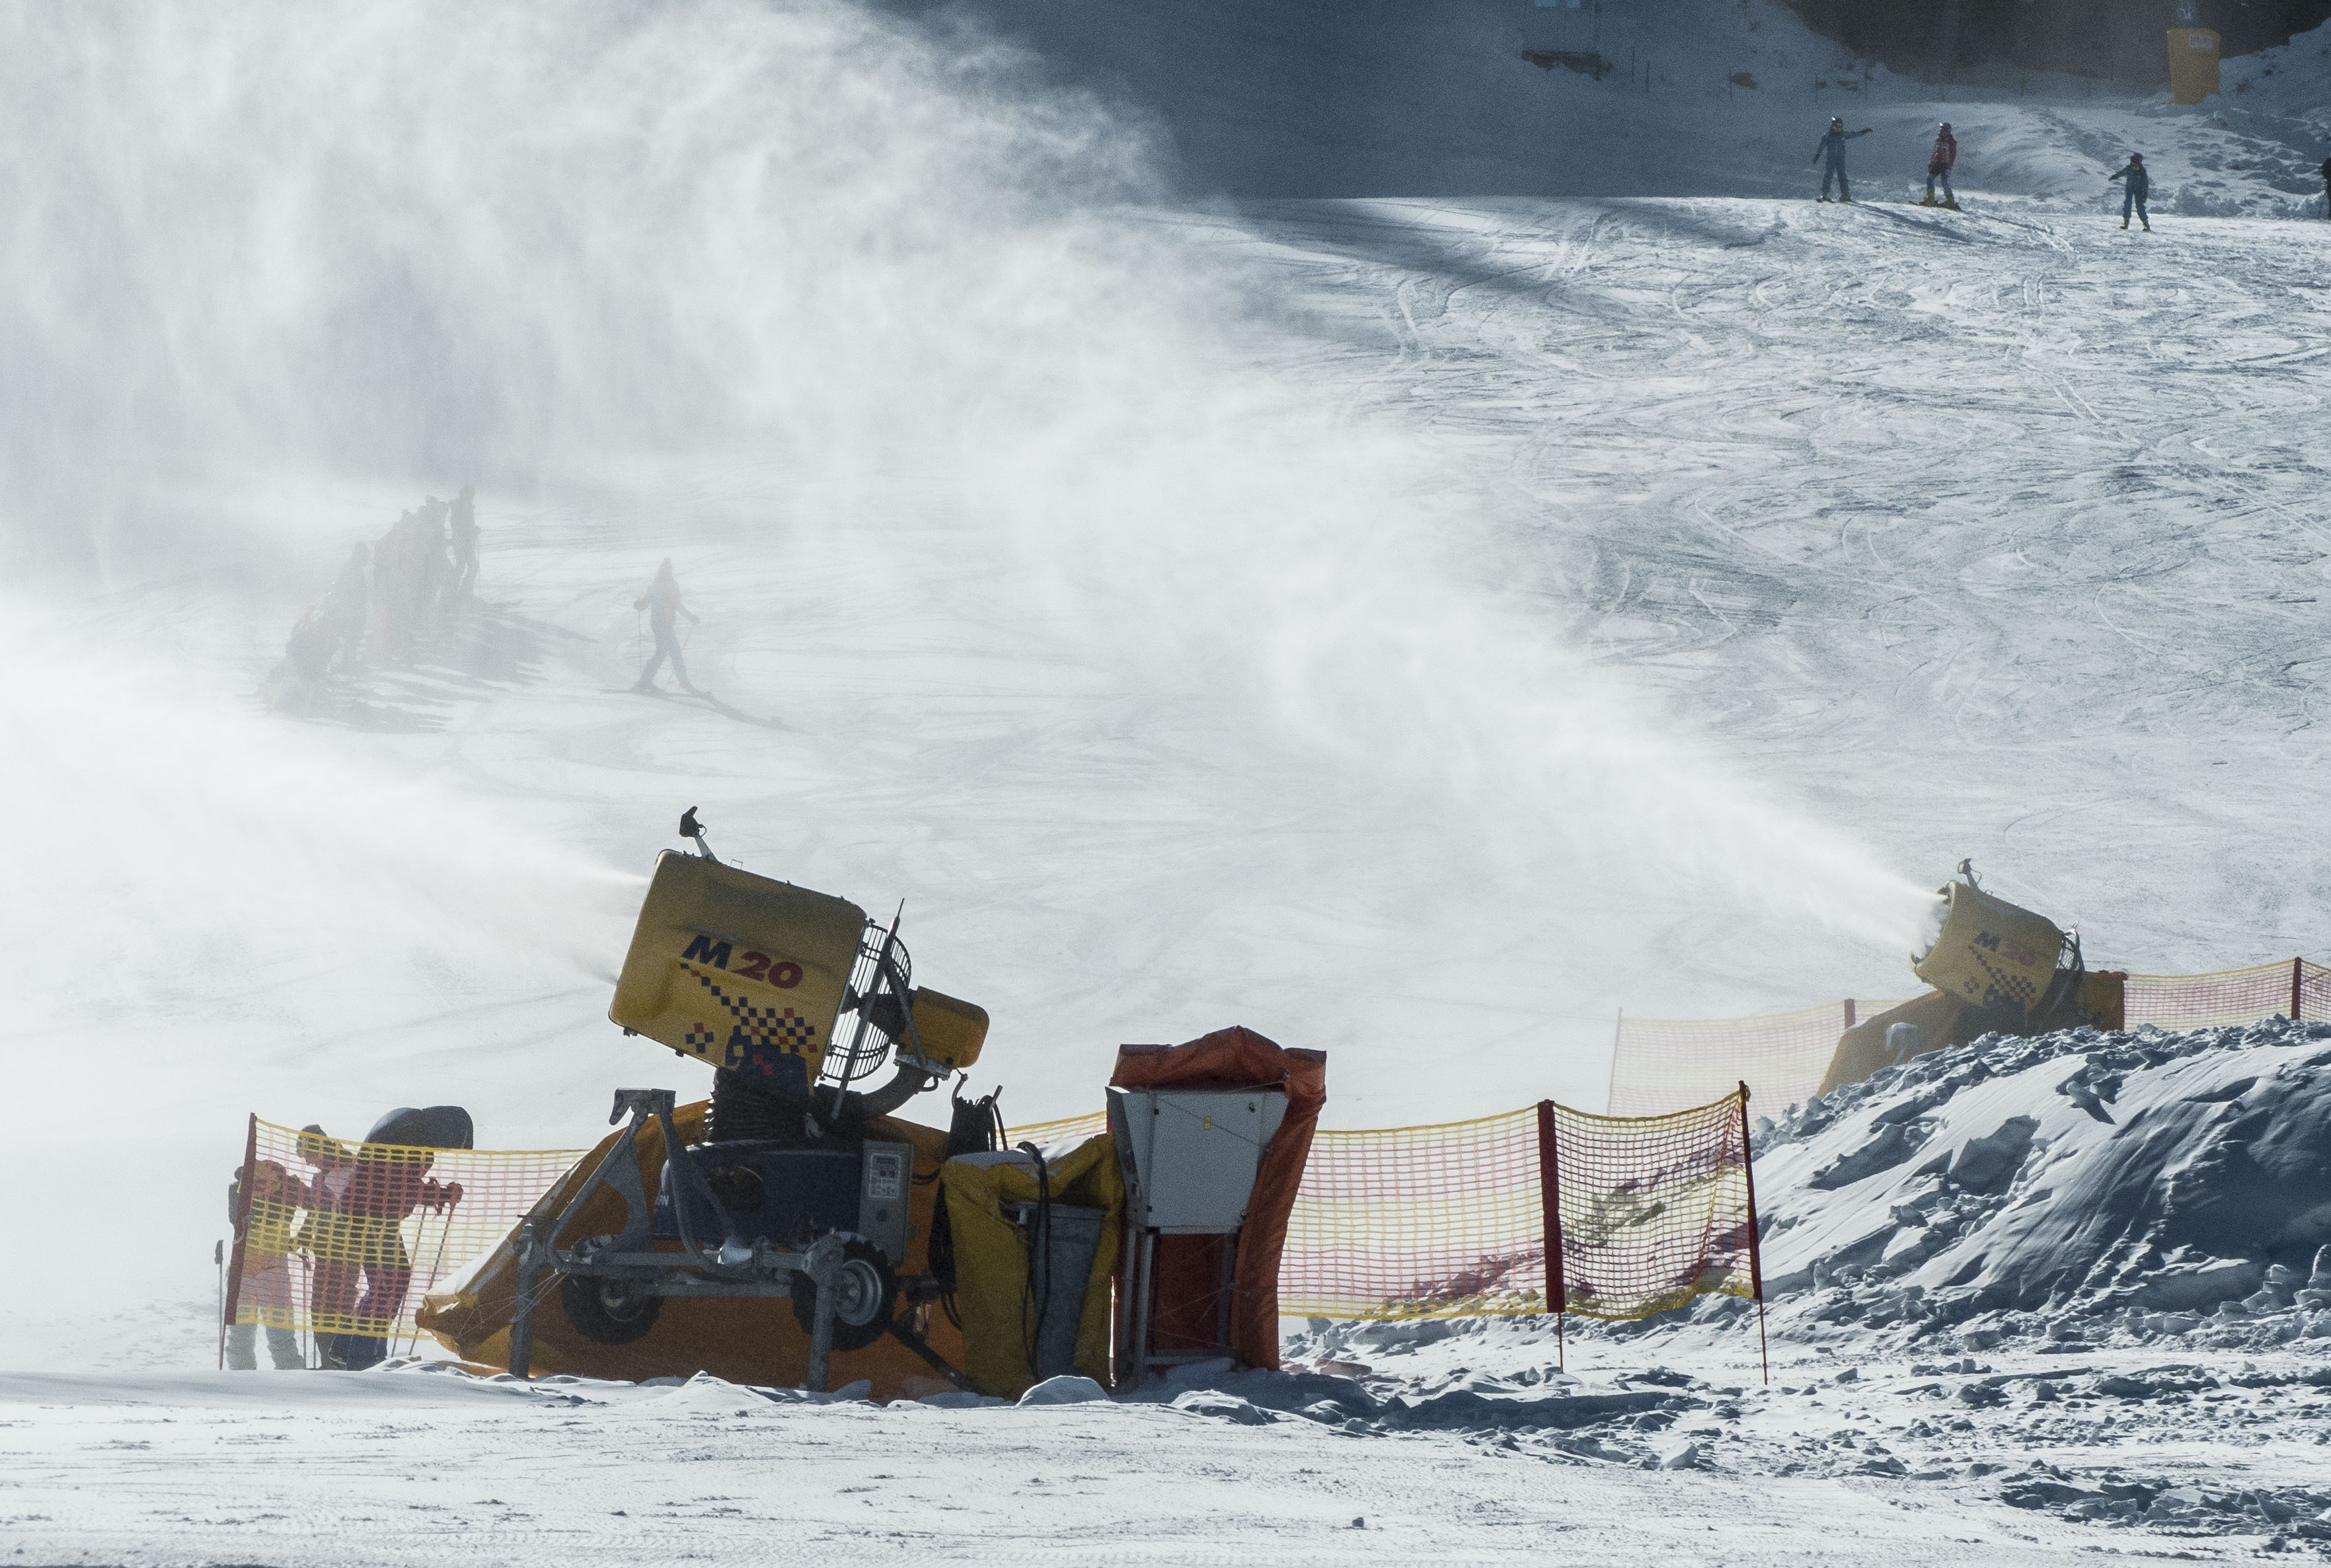 The snow cannons are working all across the mountain!